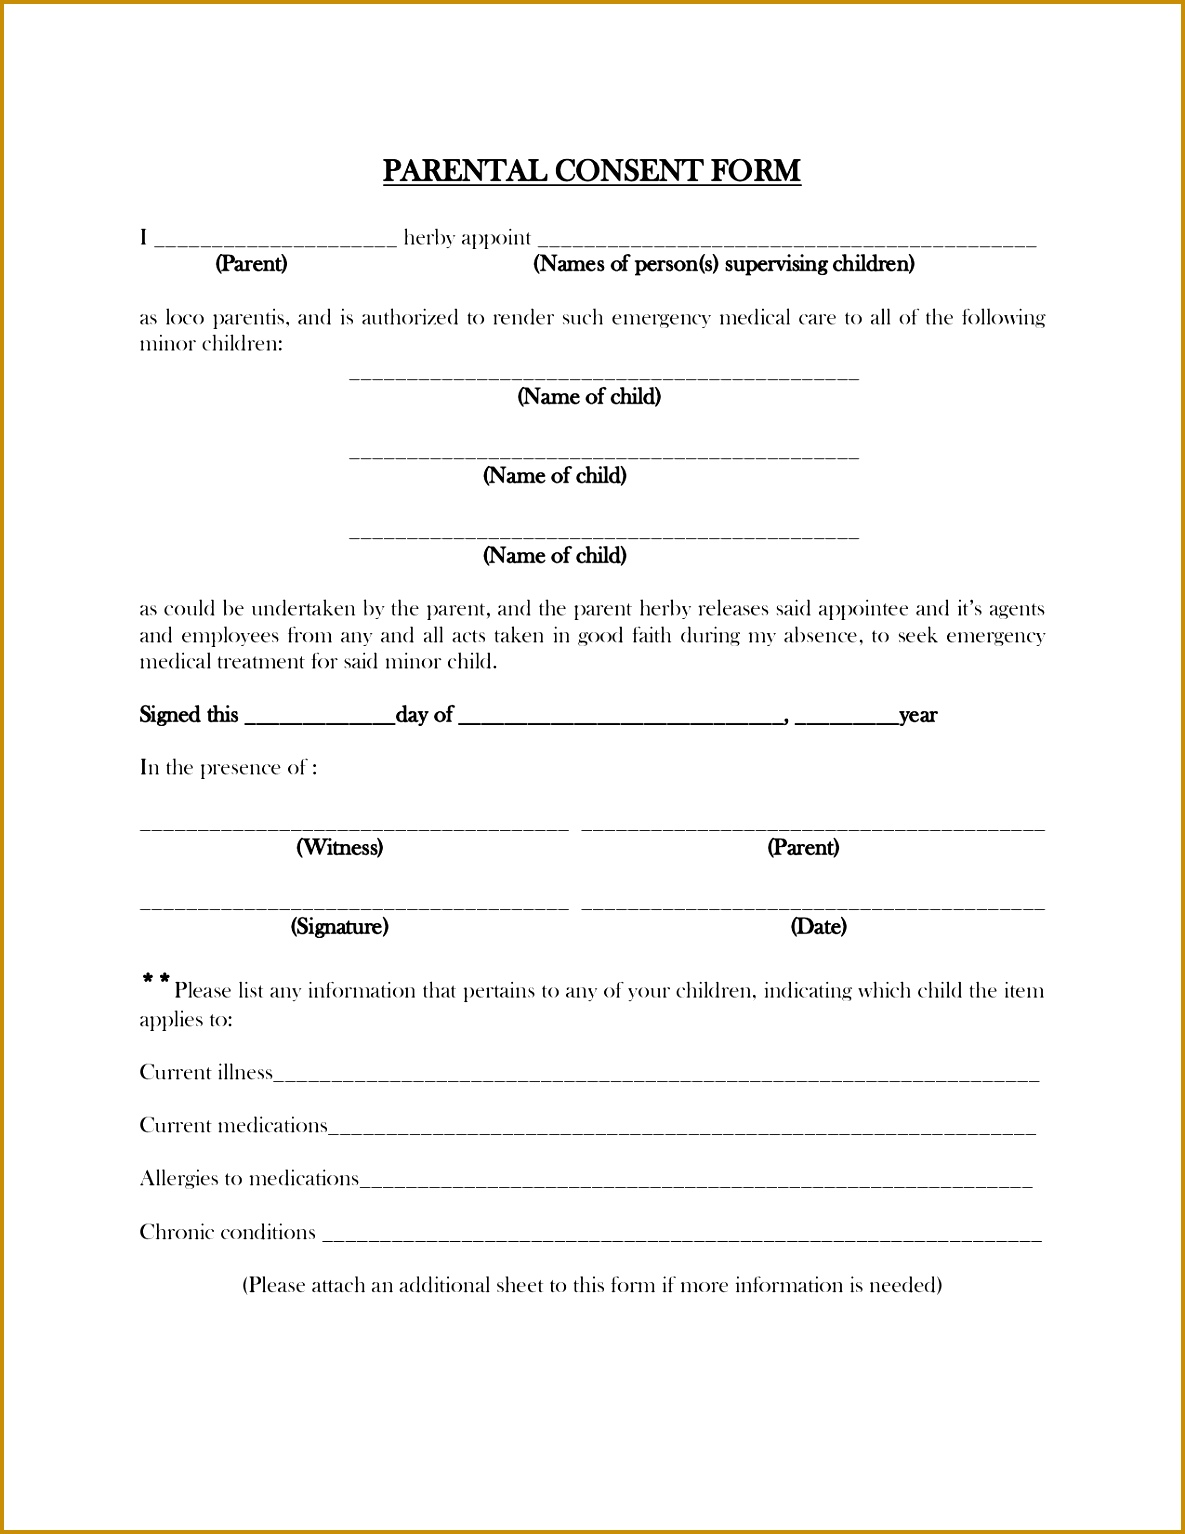 Free Child Medical Consent Form Road Worker Cover Letter Parental Travel Consent Form Template Free 15341185